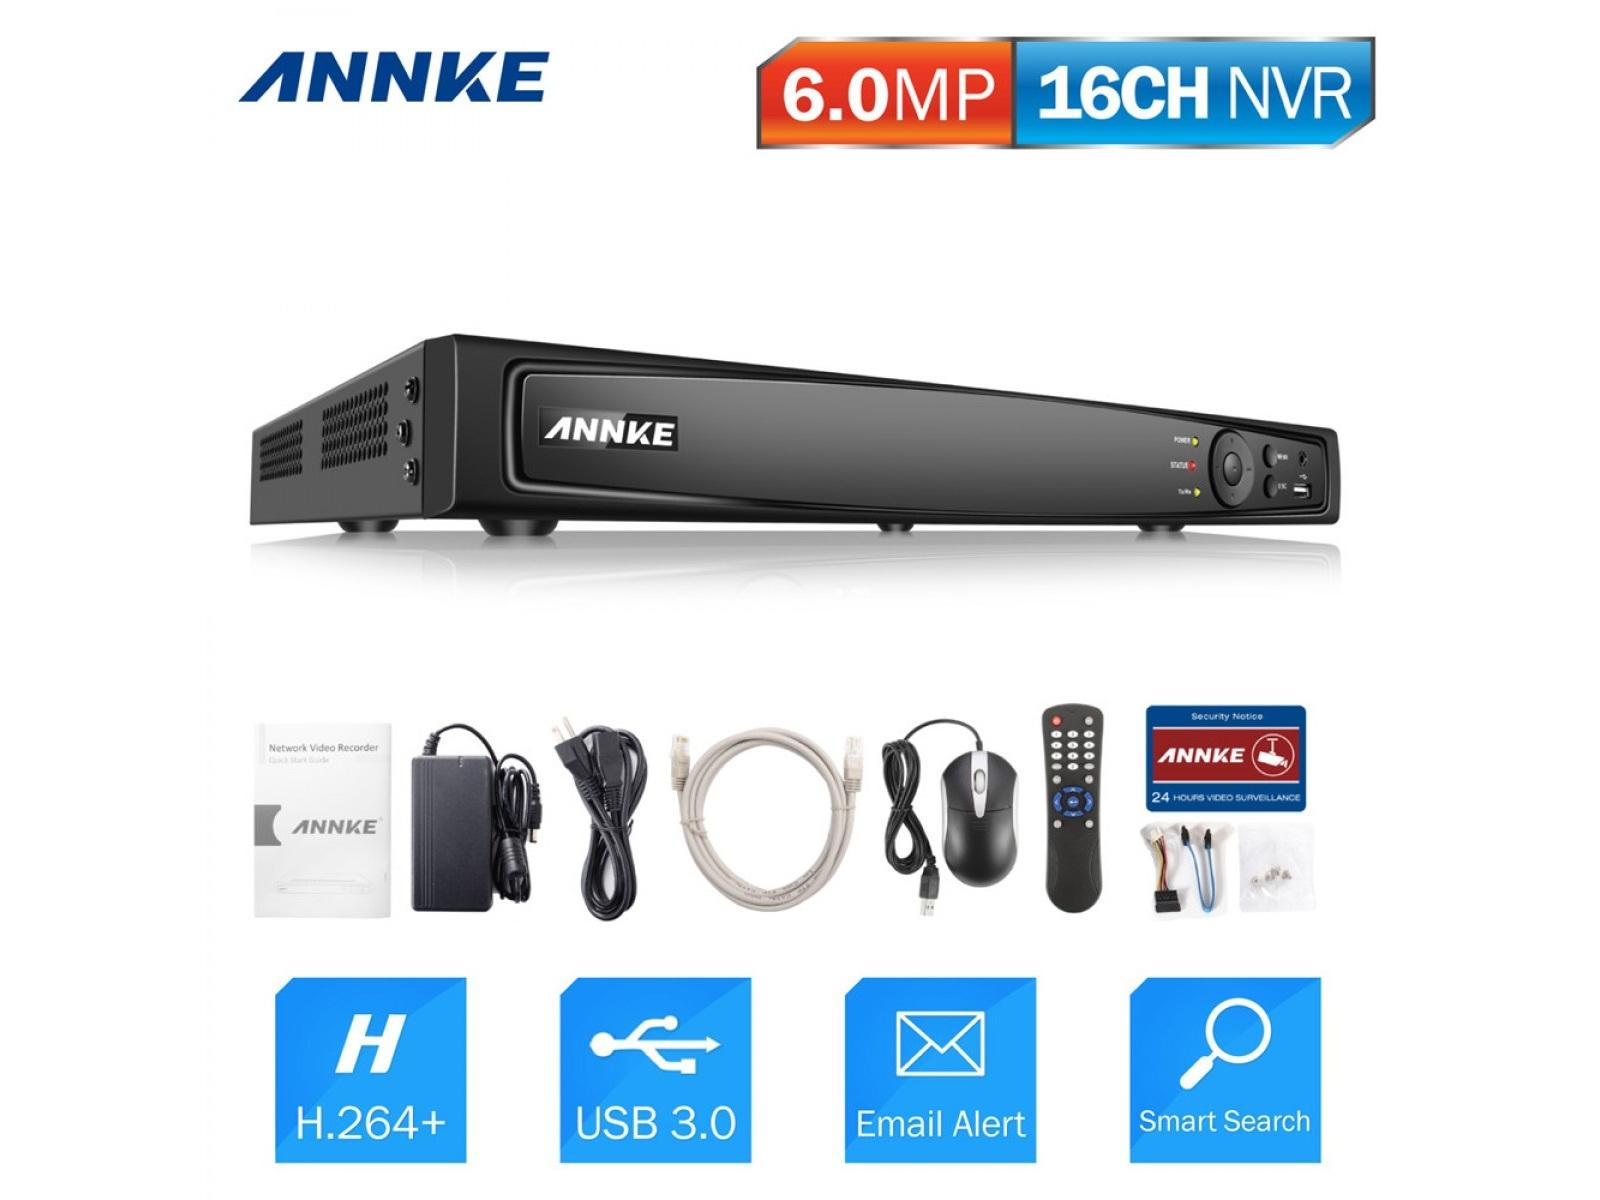 N46PI 16CH HD 6MP POE NVR Advanced H.264 Video Compression by Annke